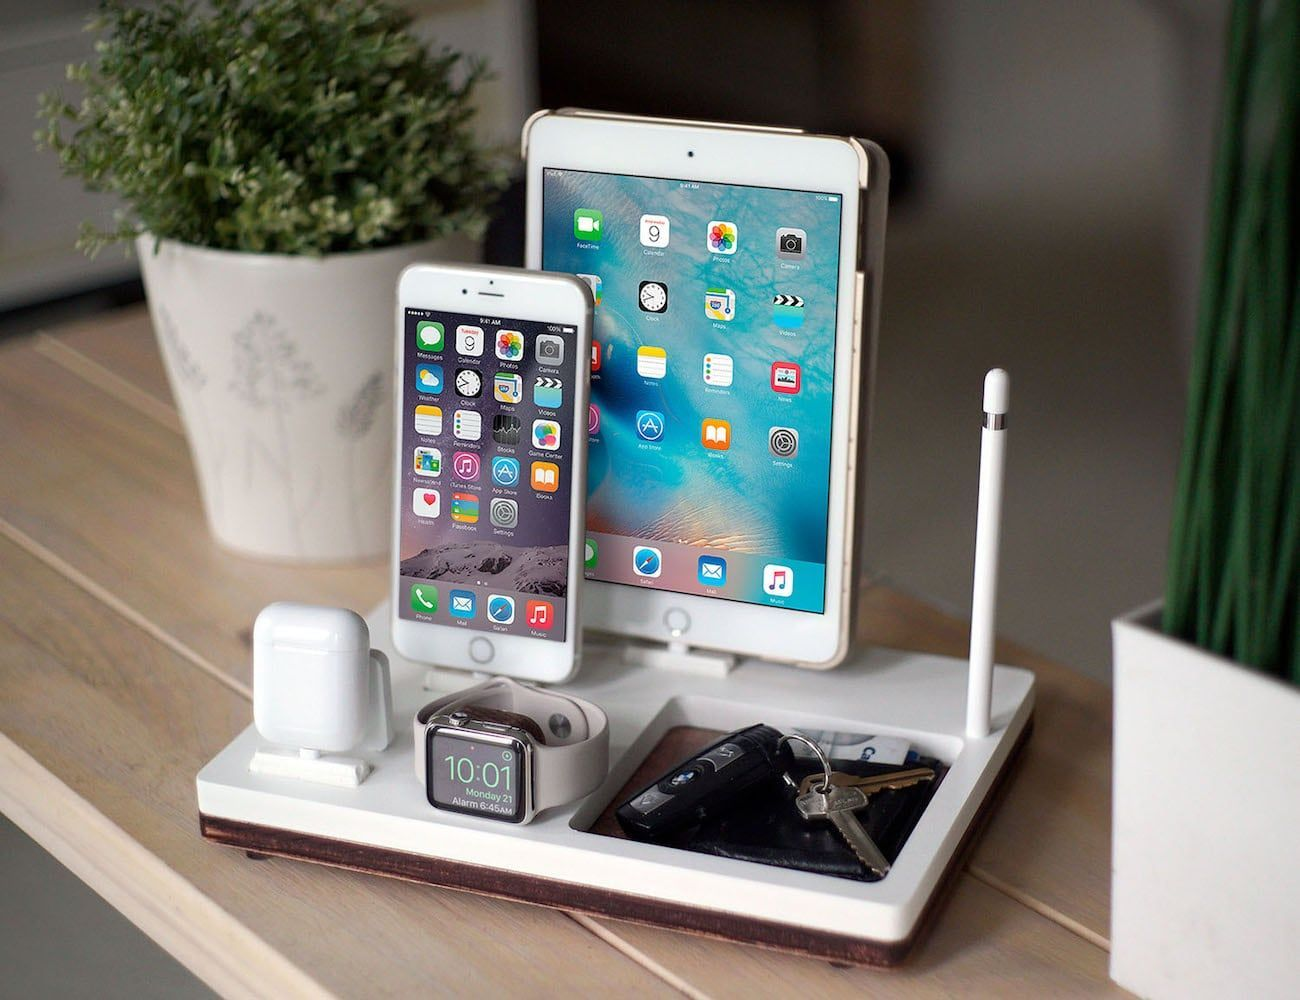 Nytstnd Multi Device Charging Station Organizes All Your Devices Charging Station Organizer Charging Station Apple Watch Iphone